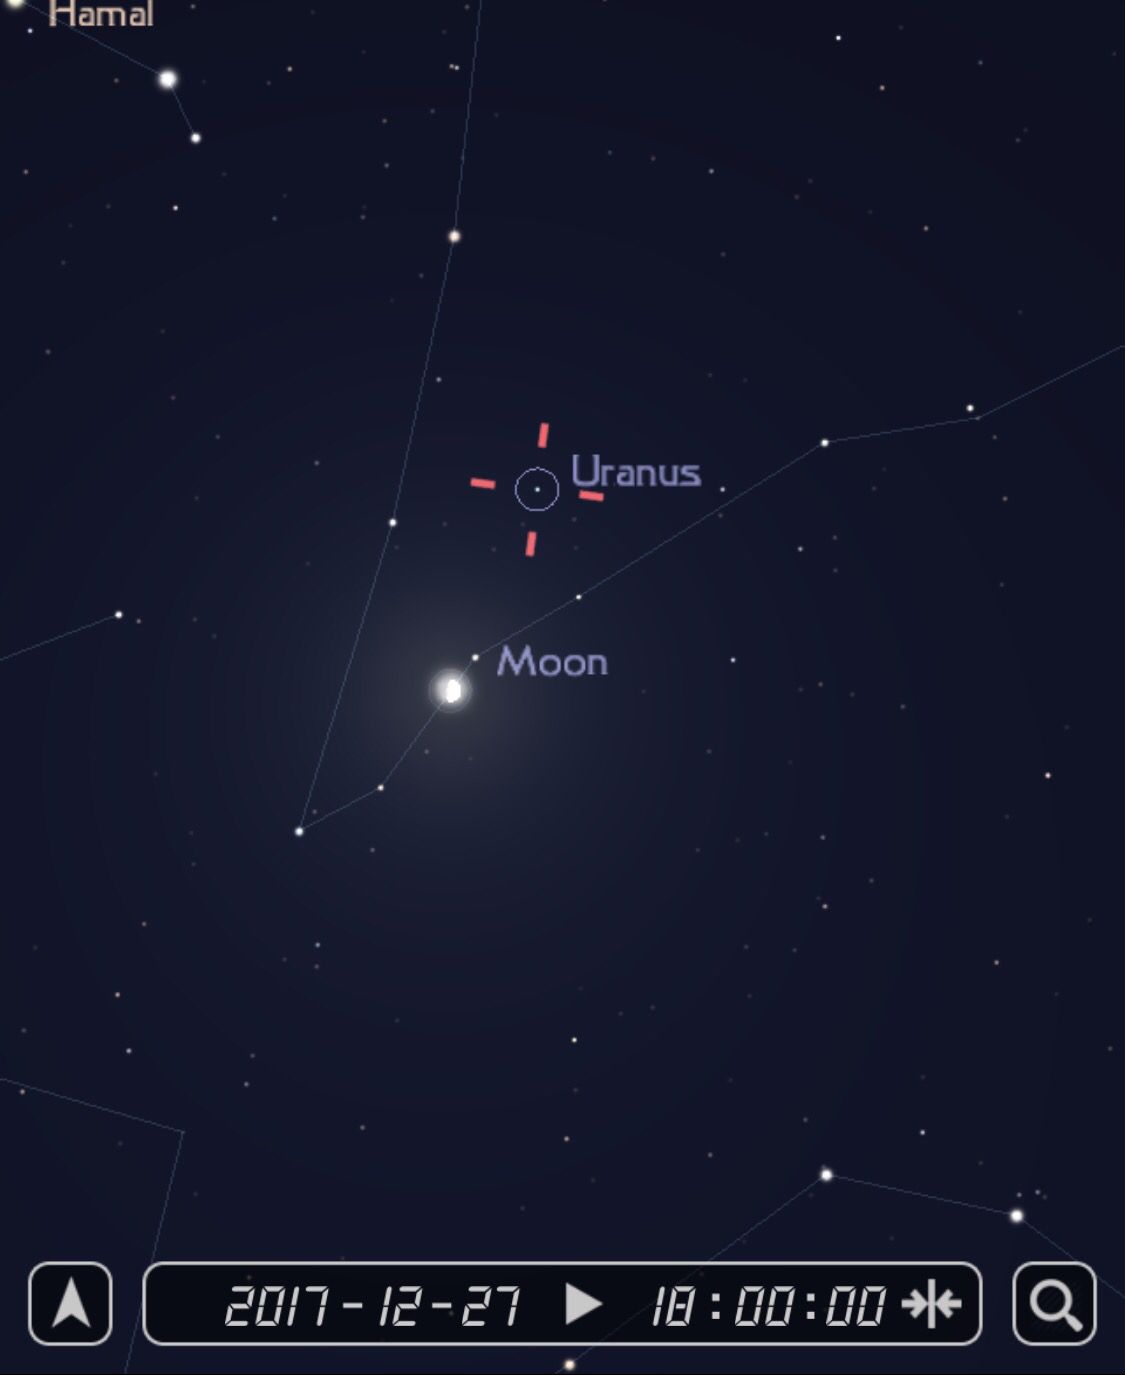 Tonight S Southern Skies Over Chicago Will Showcase The Moon Next To Planet Uranus The Lunar Glare Will Make It Very Hard To See Ve Astronomy Uranus Chicago